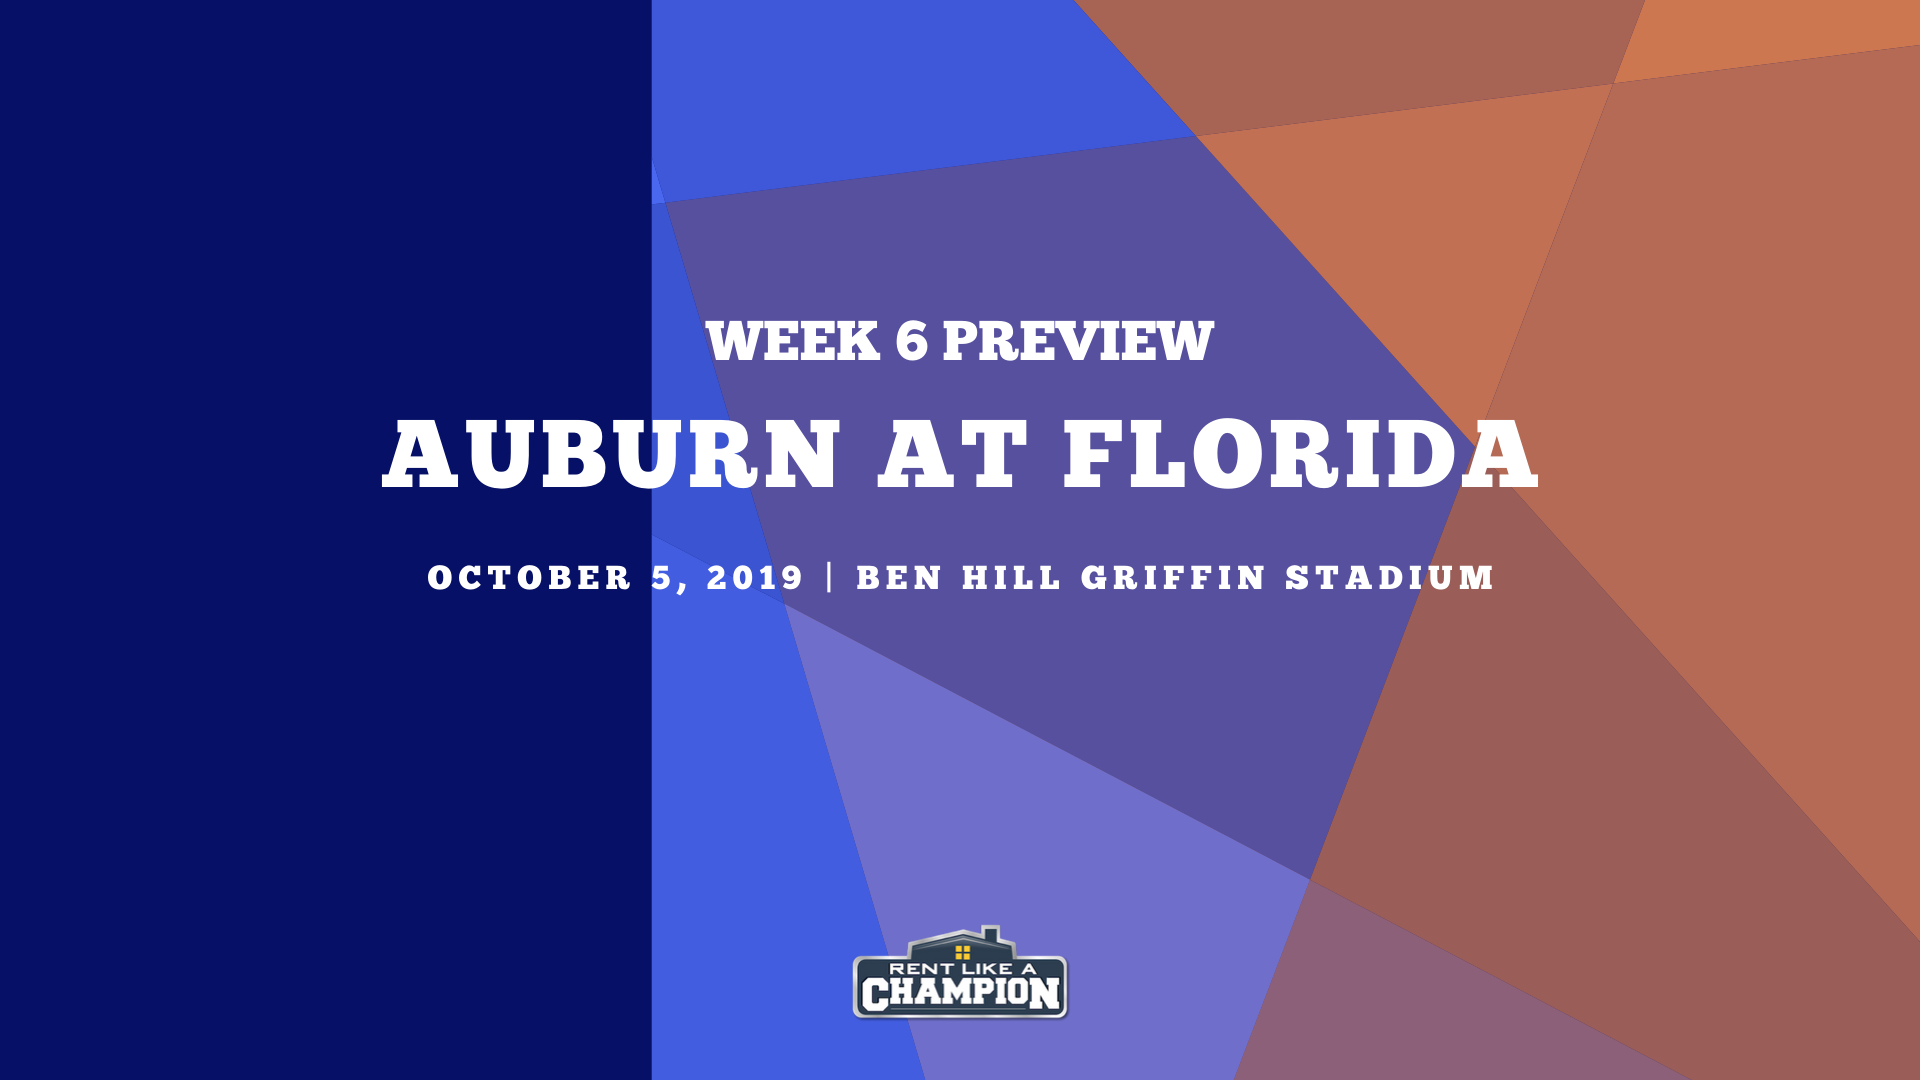 Auburn Game Preview Template (5)